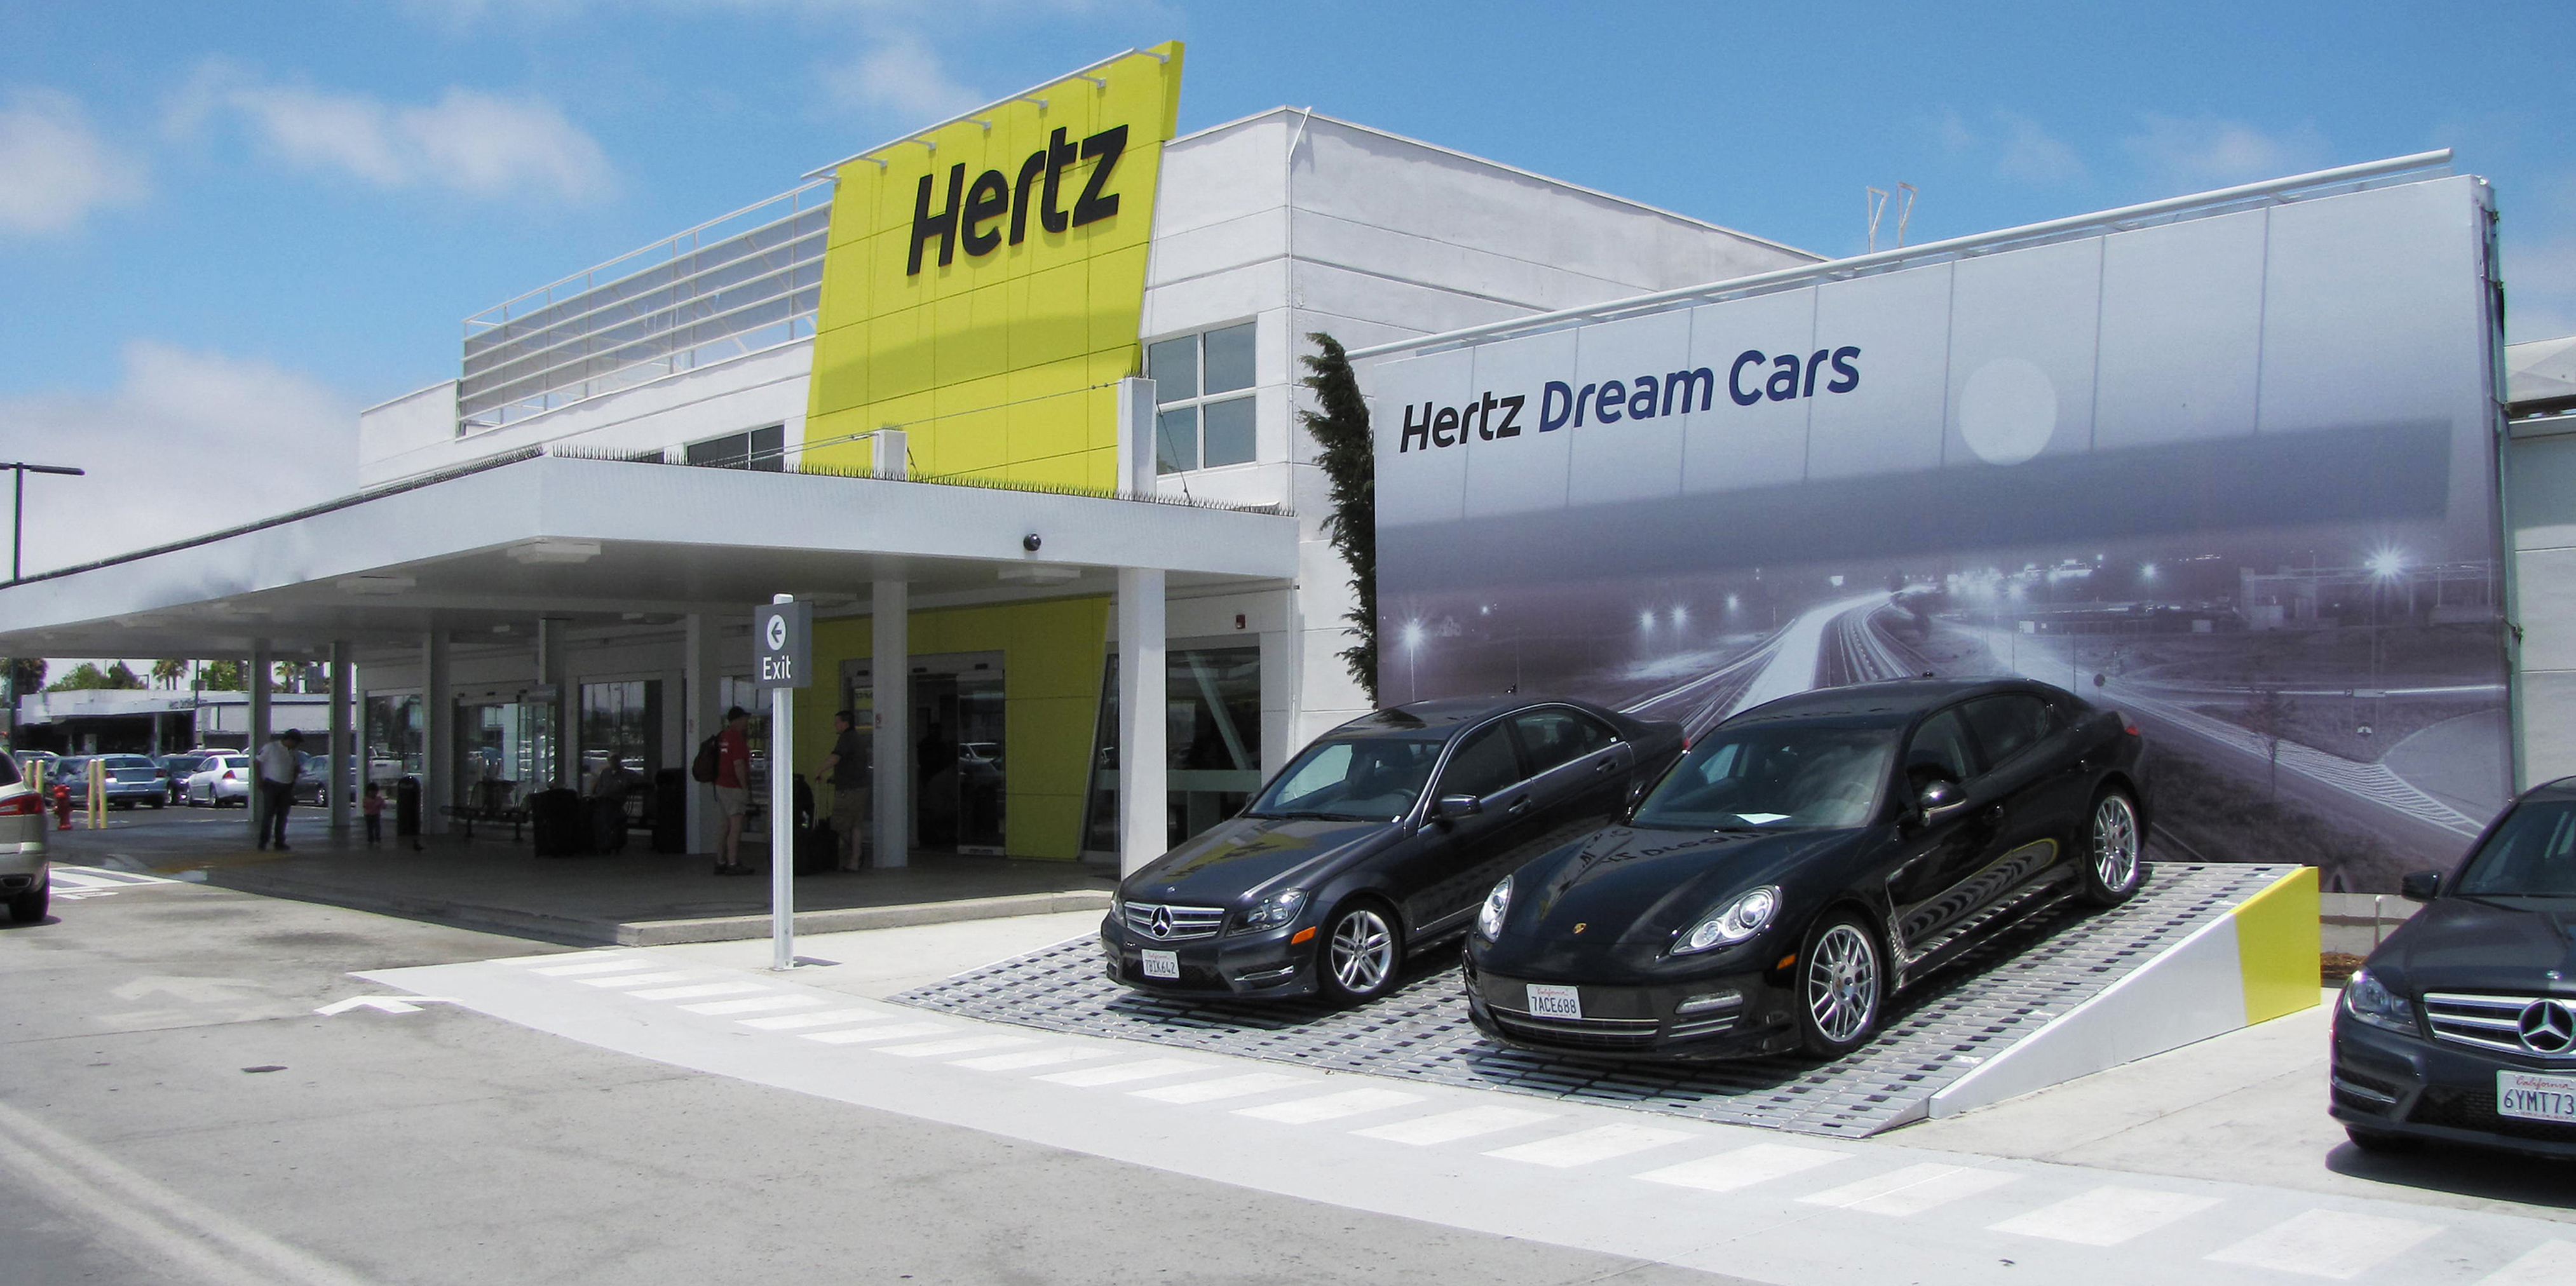 Hertz in SAVANNAH, Georgia